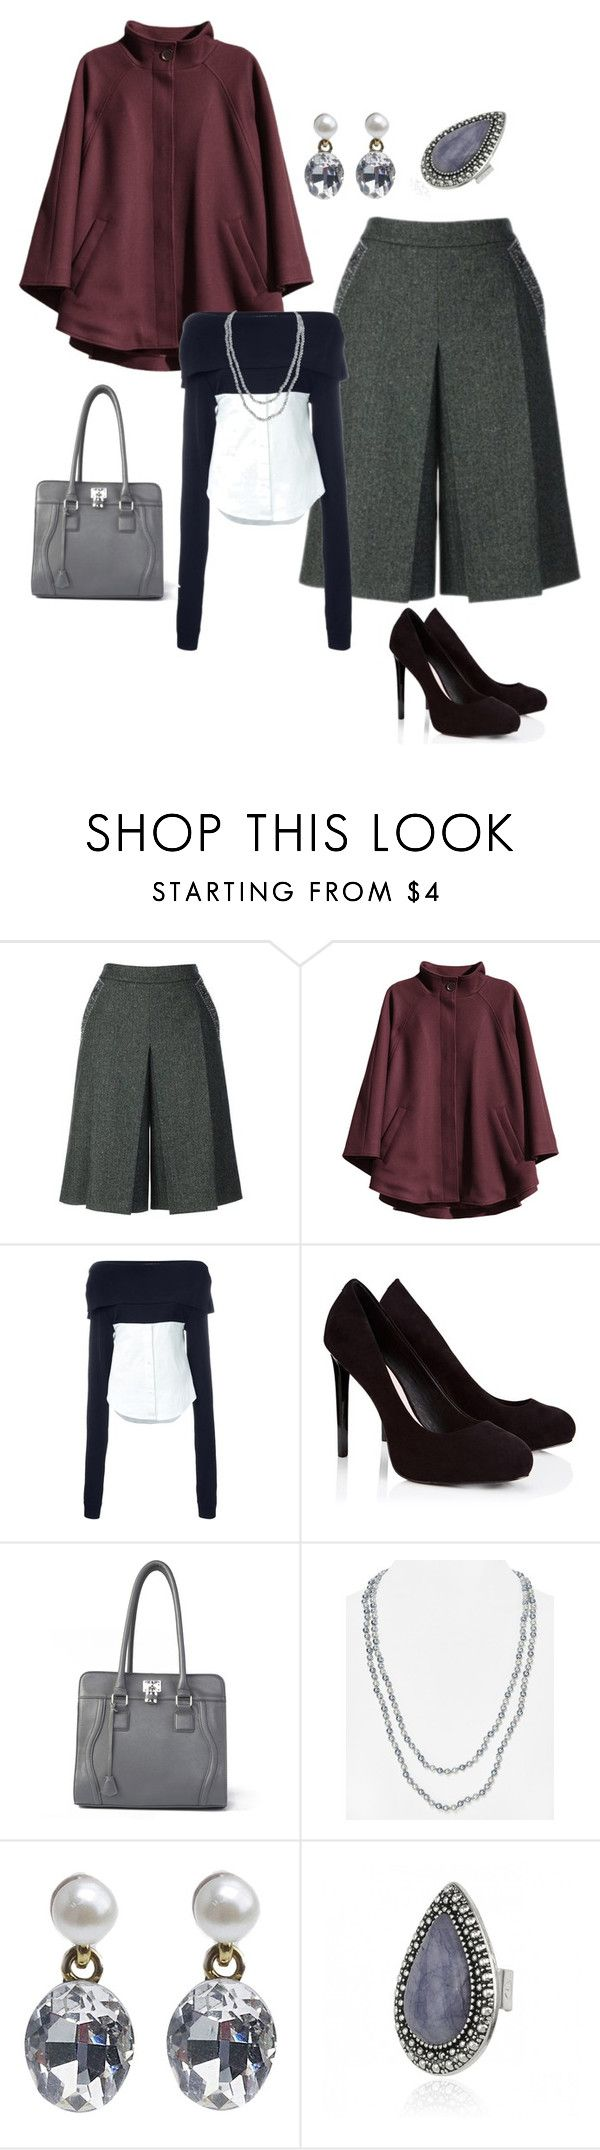 """""""Athens 28-10-2015"""" by antiadamo on Polyvore featuring H&M, Jacquemus, Lipsy and Carolee"""